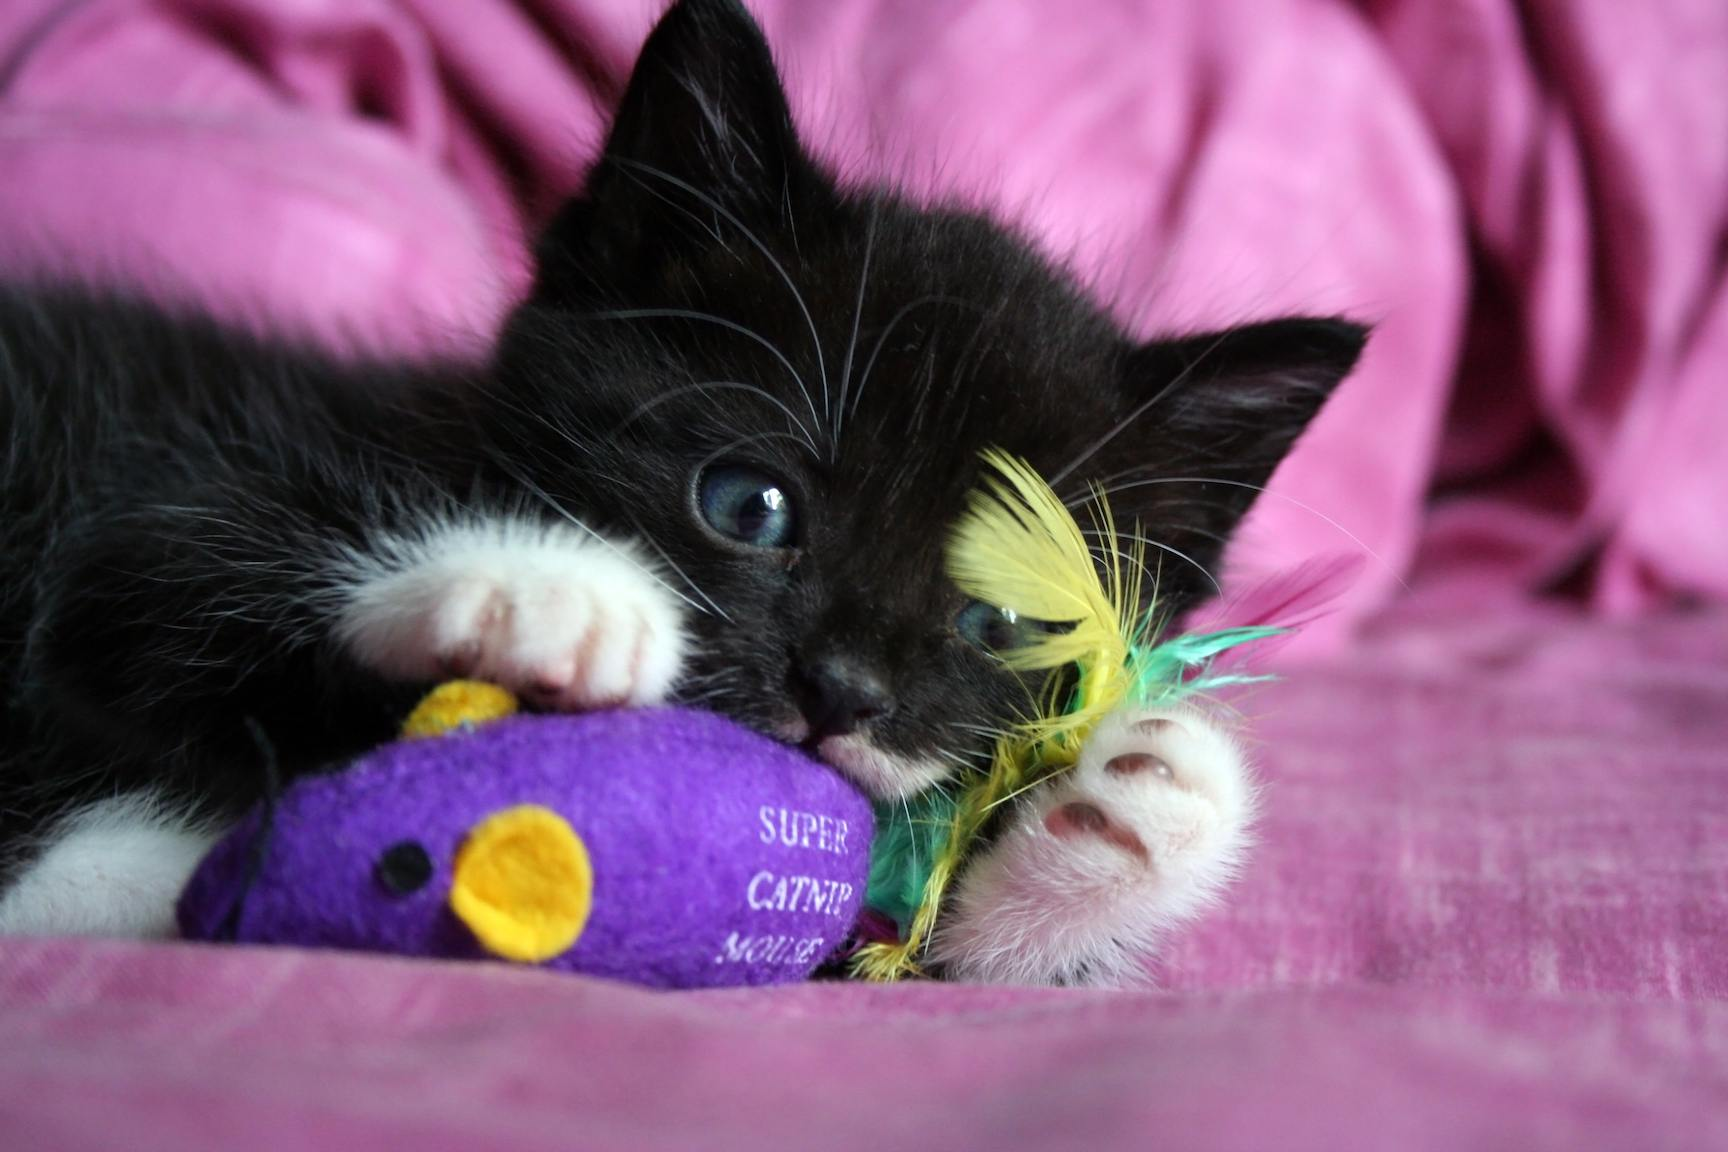 Kitten playing with catnip mouse toy